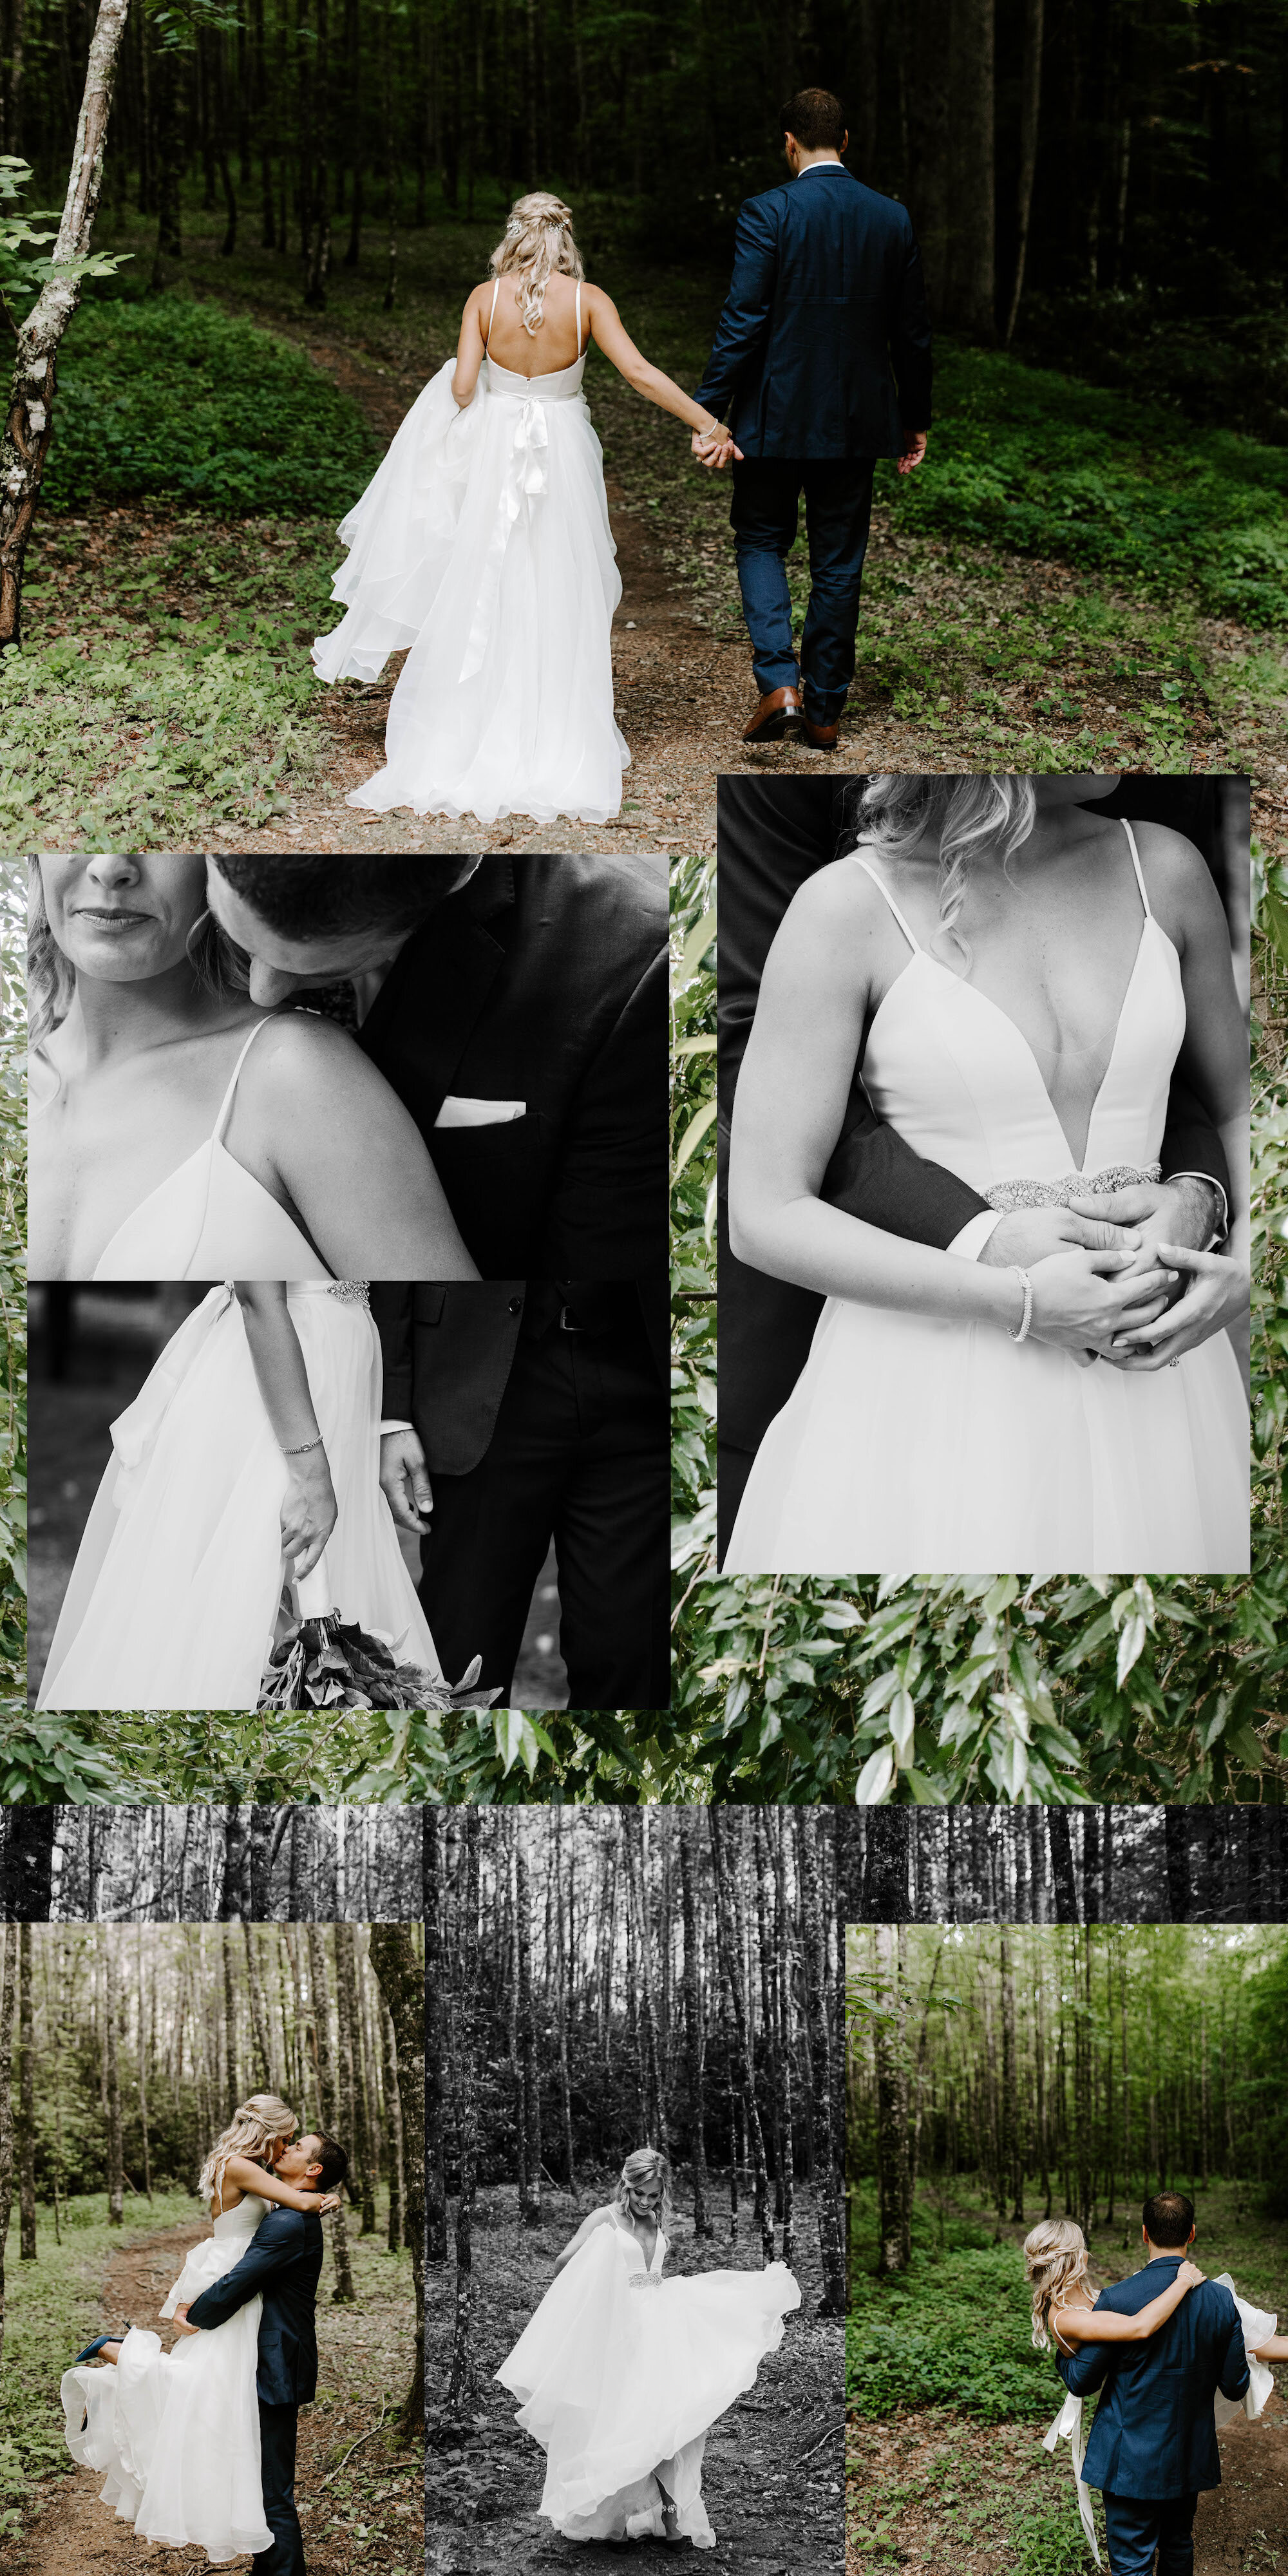 hawksdene-green-summer-wedding4-bride-and-groom.jpg